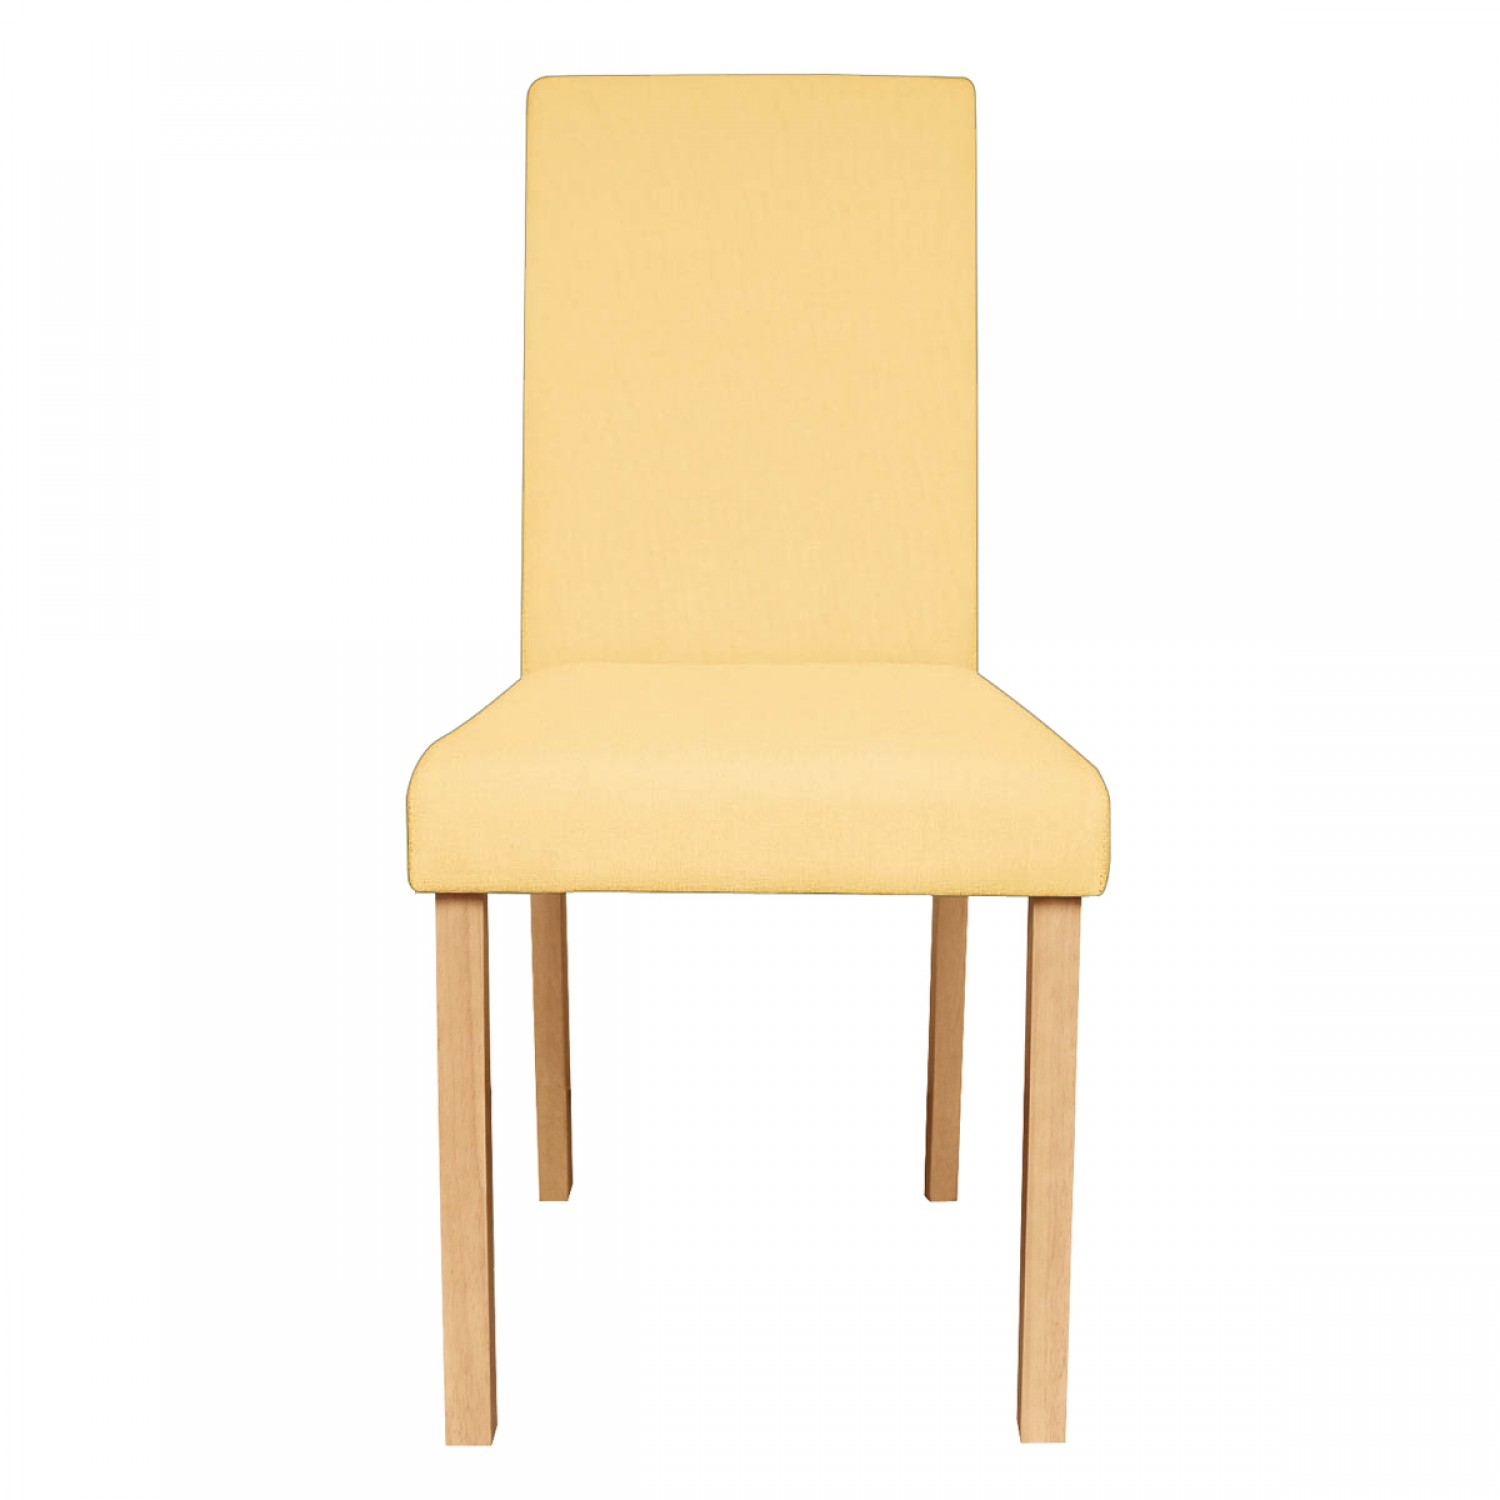 Salon En Tissu Chaise De Salon En Tissu Jaune Lot De 2 Koya Design